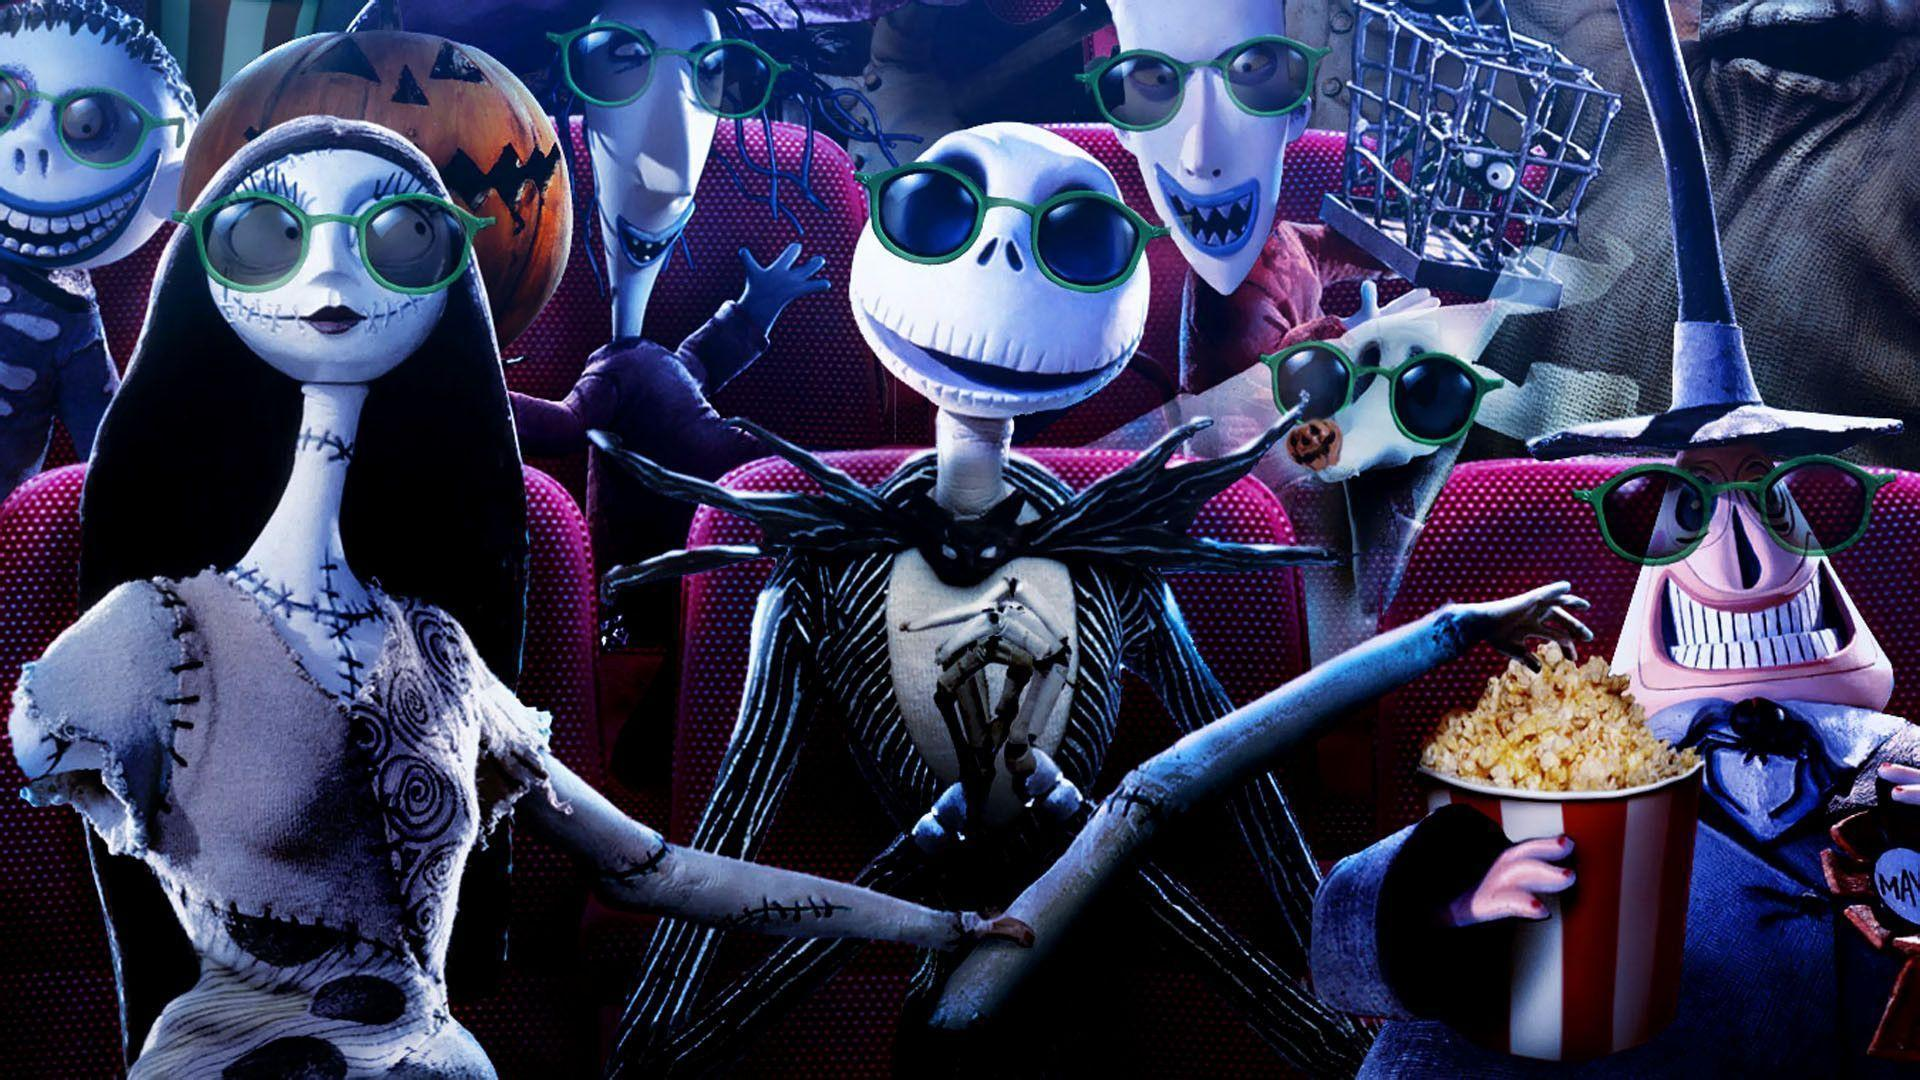 Wallpapers For > Nightmare Before Christmas Wallpapers 1920x1080